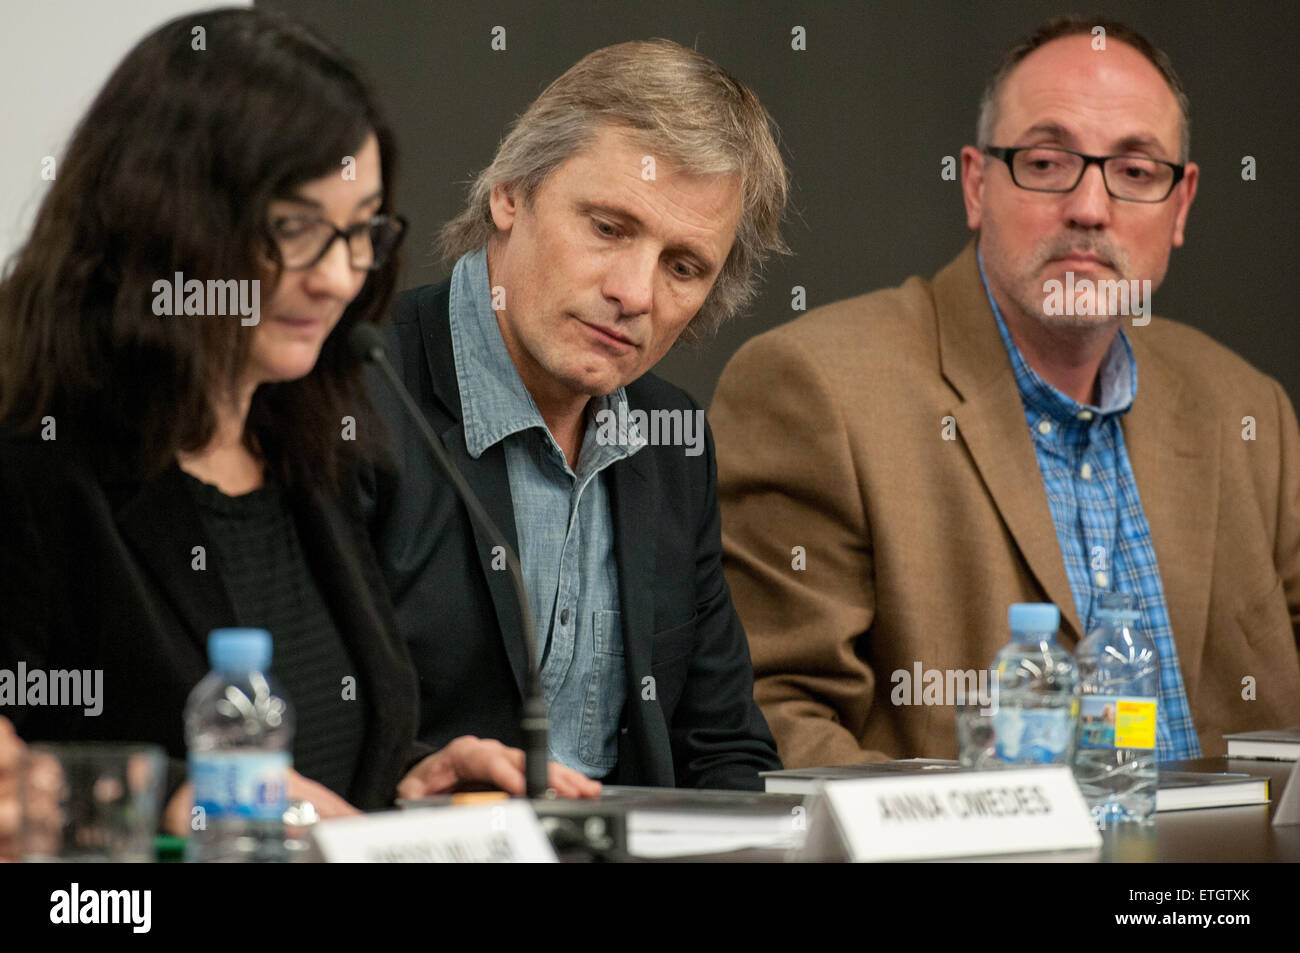 Viggo Mortensen attends the presentation for the book 'Sons of the Forest' in Barcelona. The book by Bossert - Stock Image